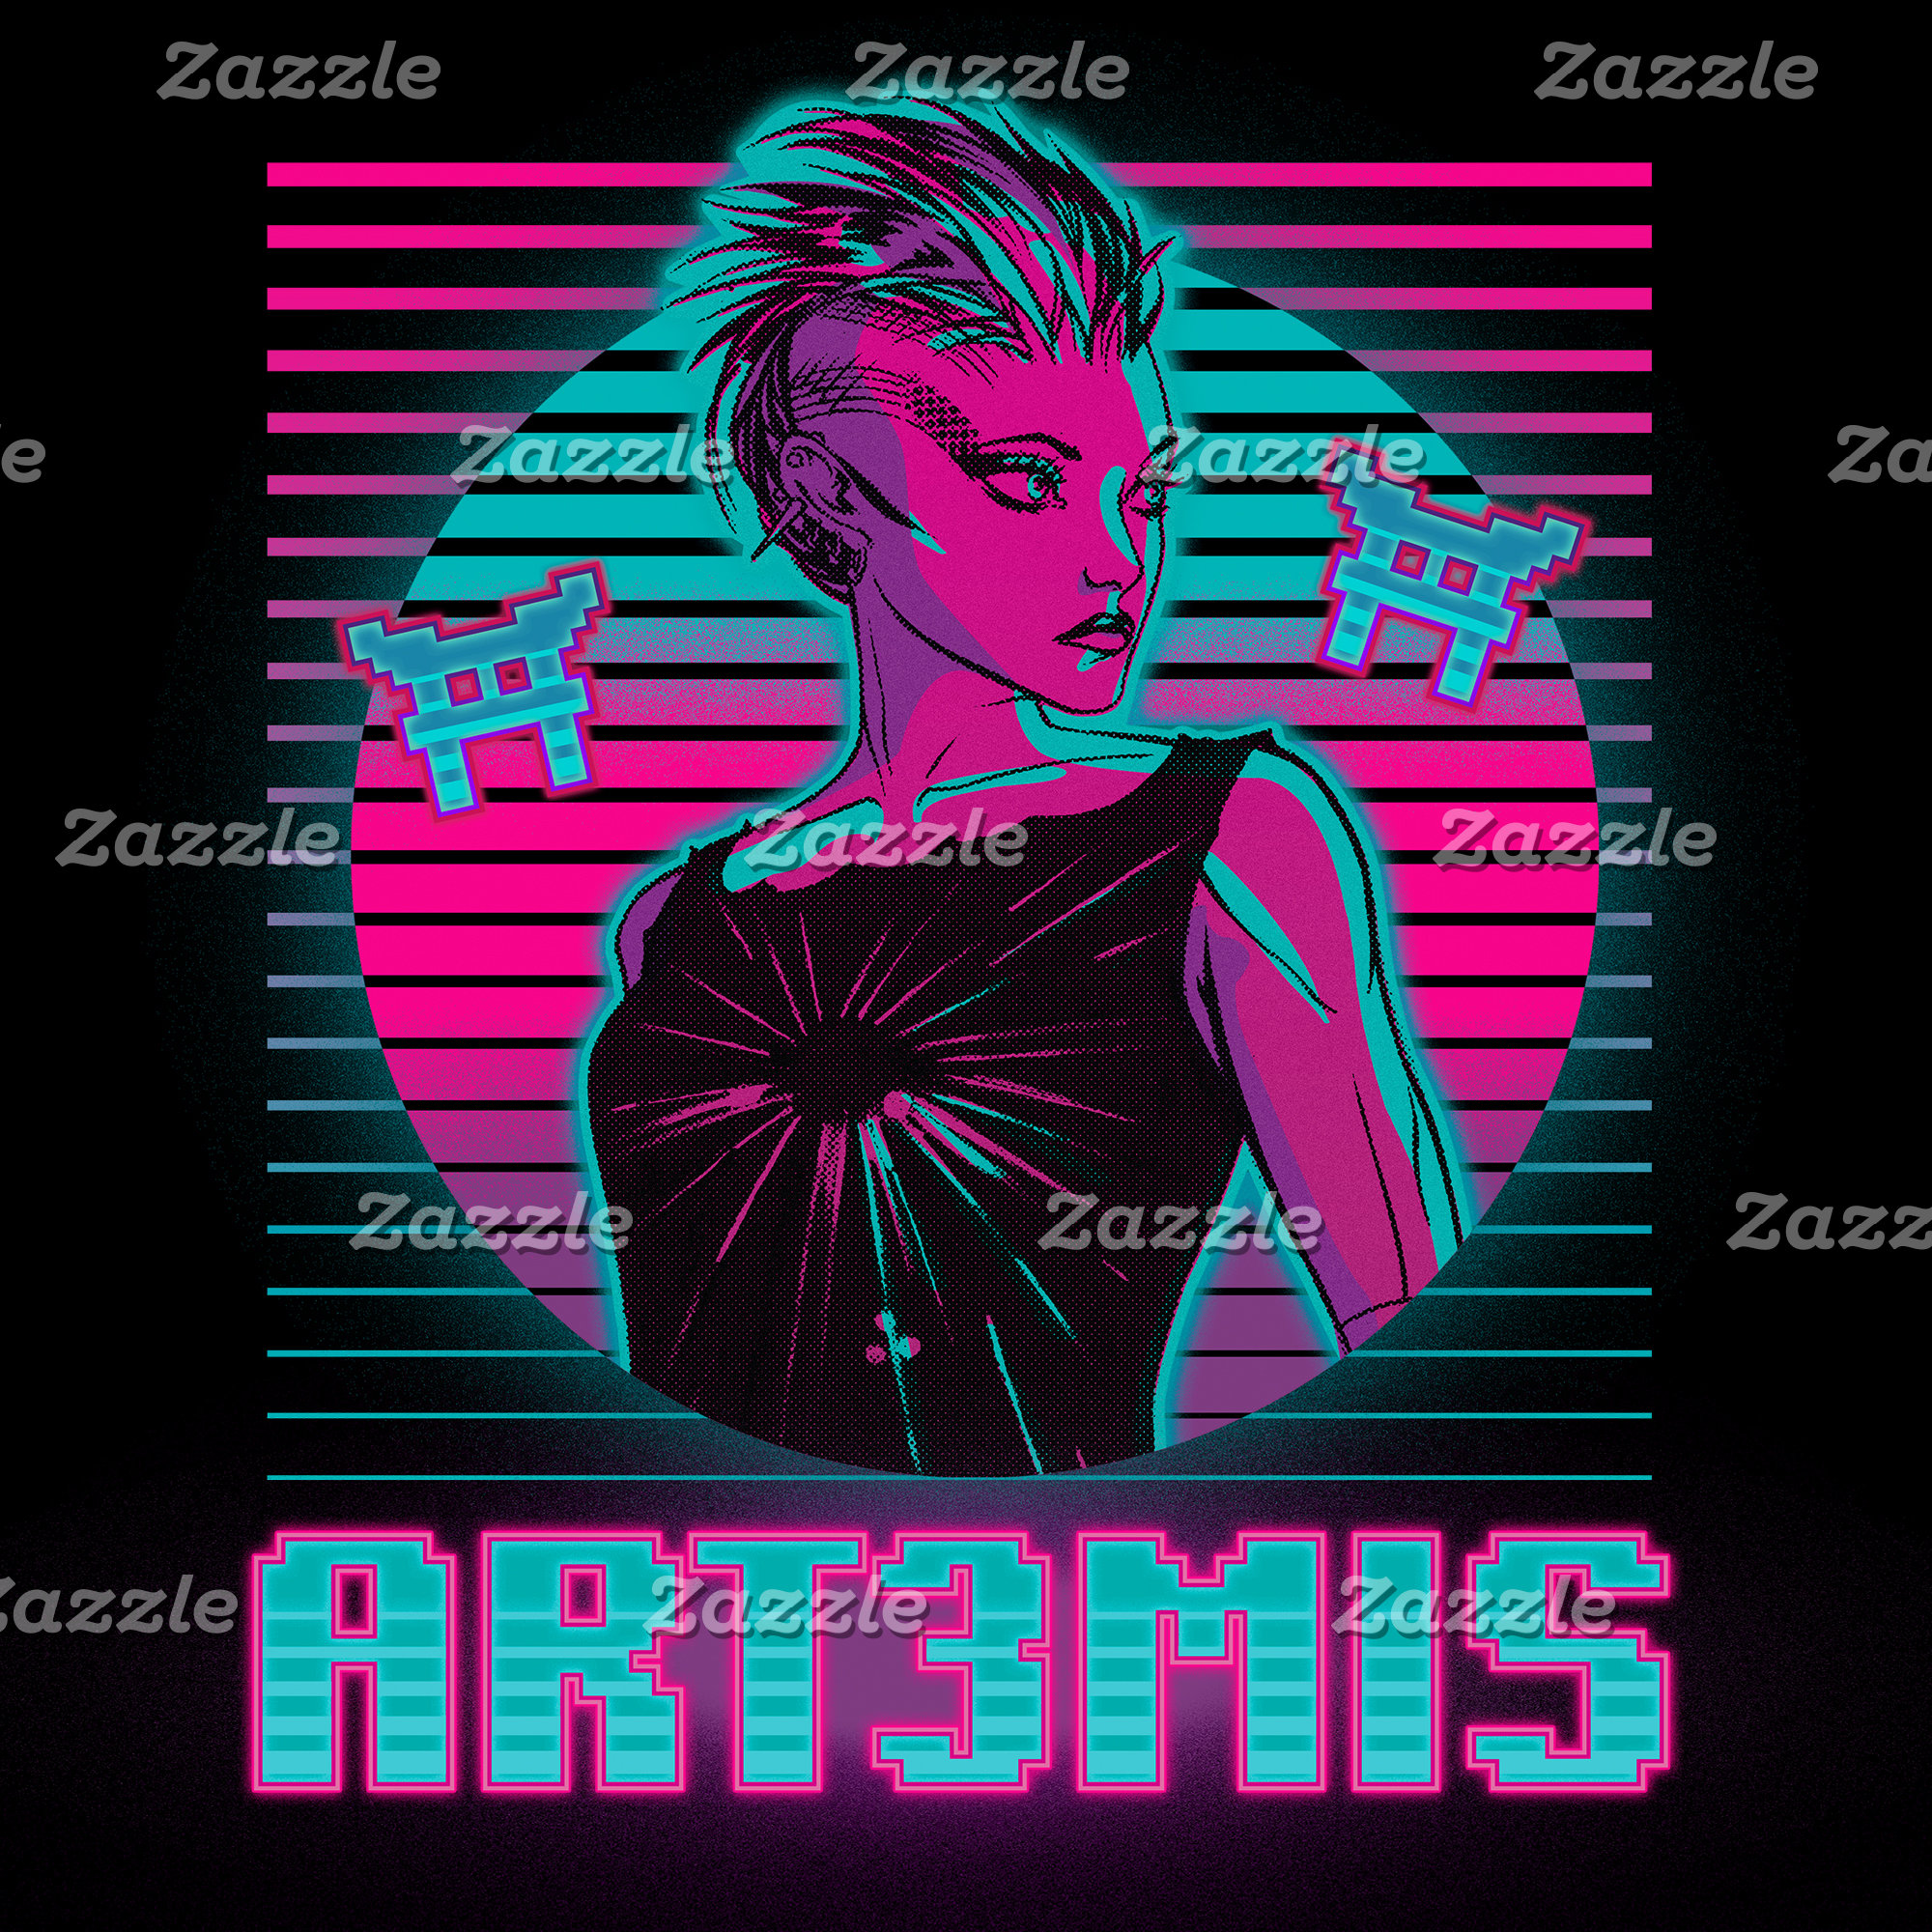 Art3mis Graphic